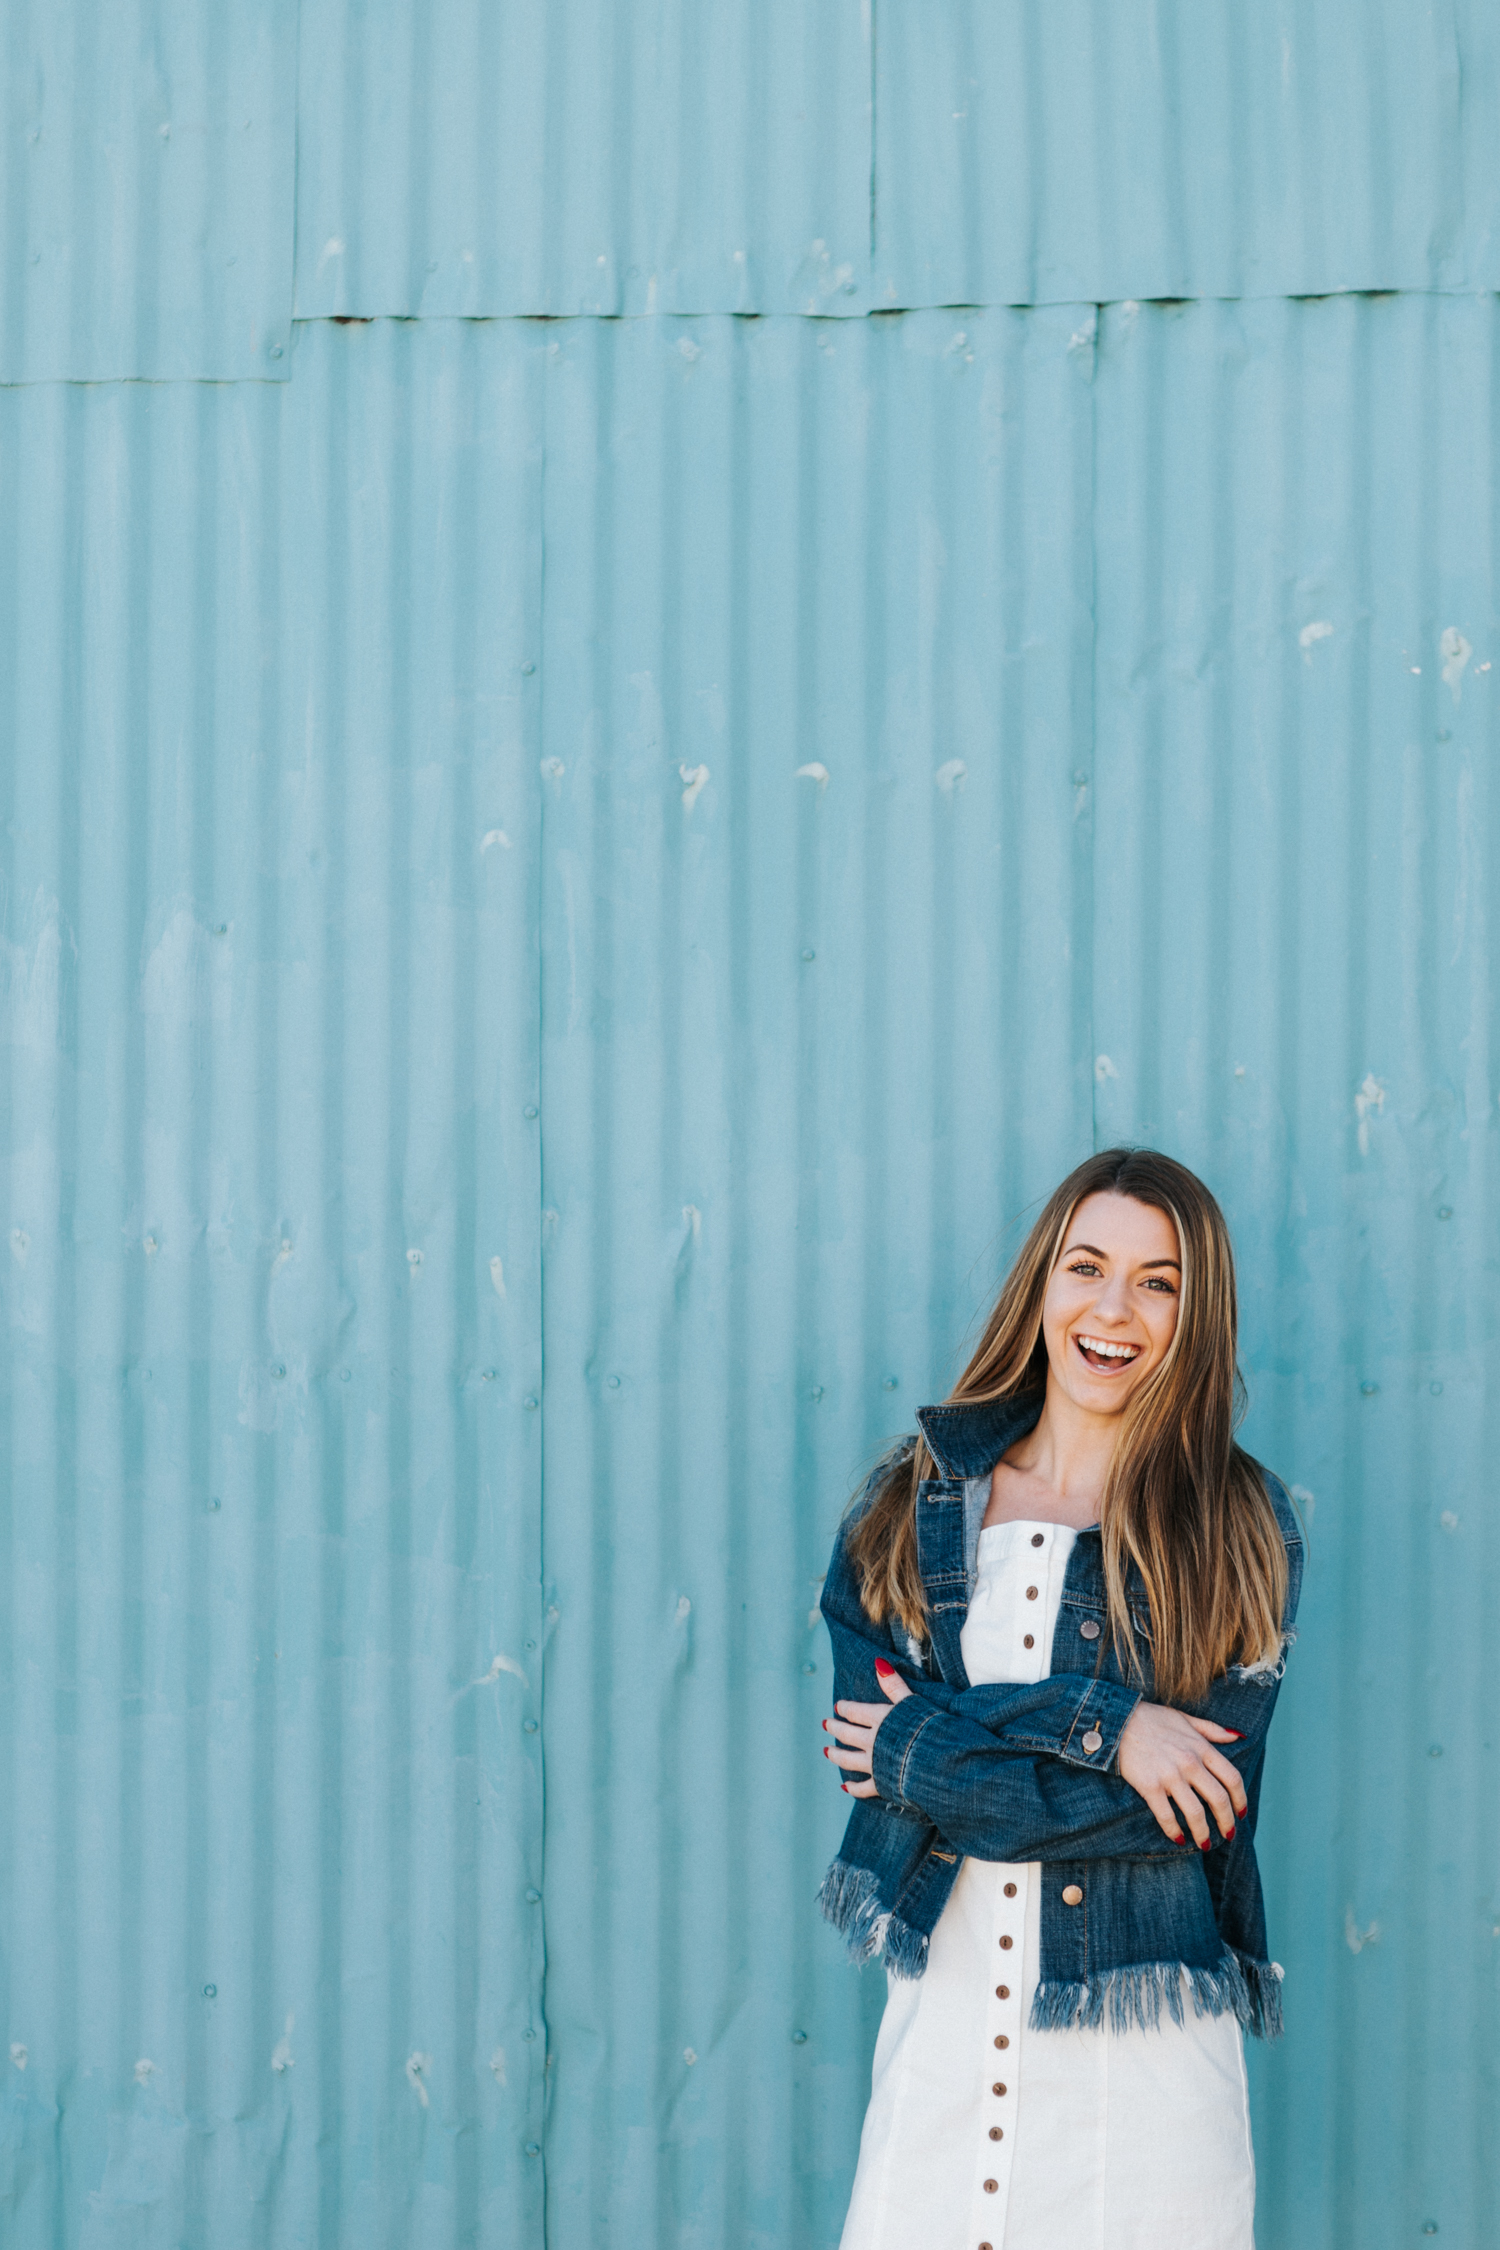 Jadyn Freeman // I'm honestly really excited about my senior year! I love school 95% of the time! Everyone talks about how great senior year is which makes me want it to come so much faster!!